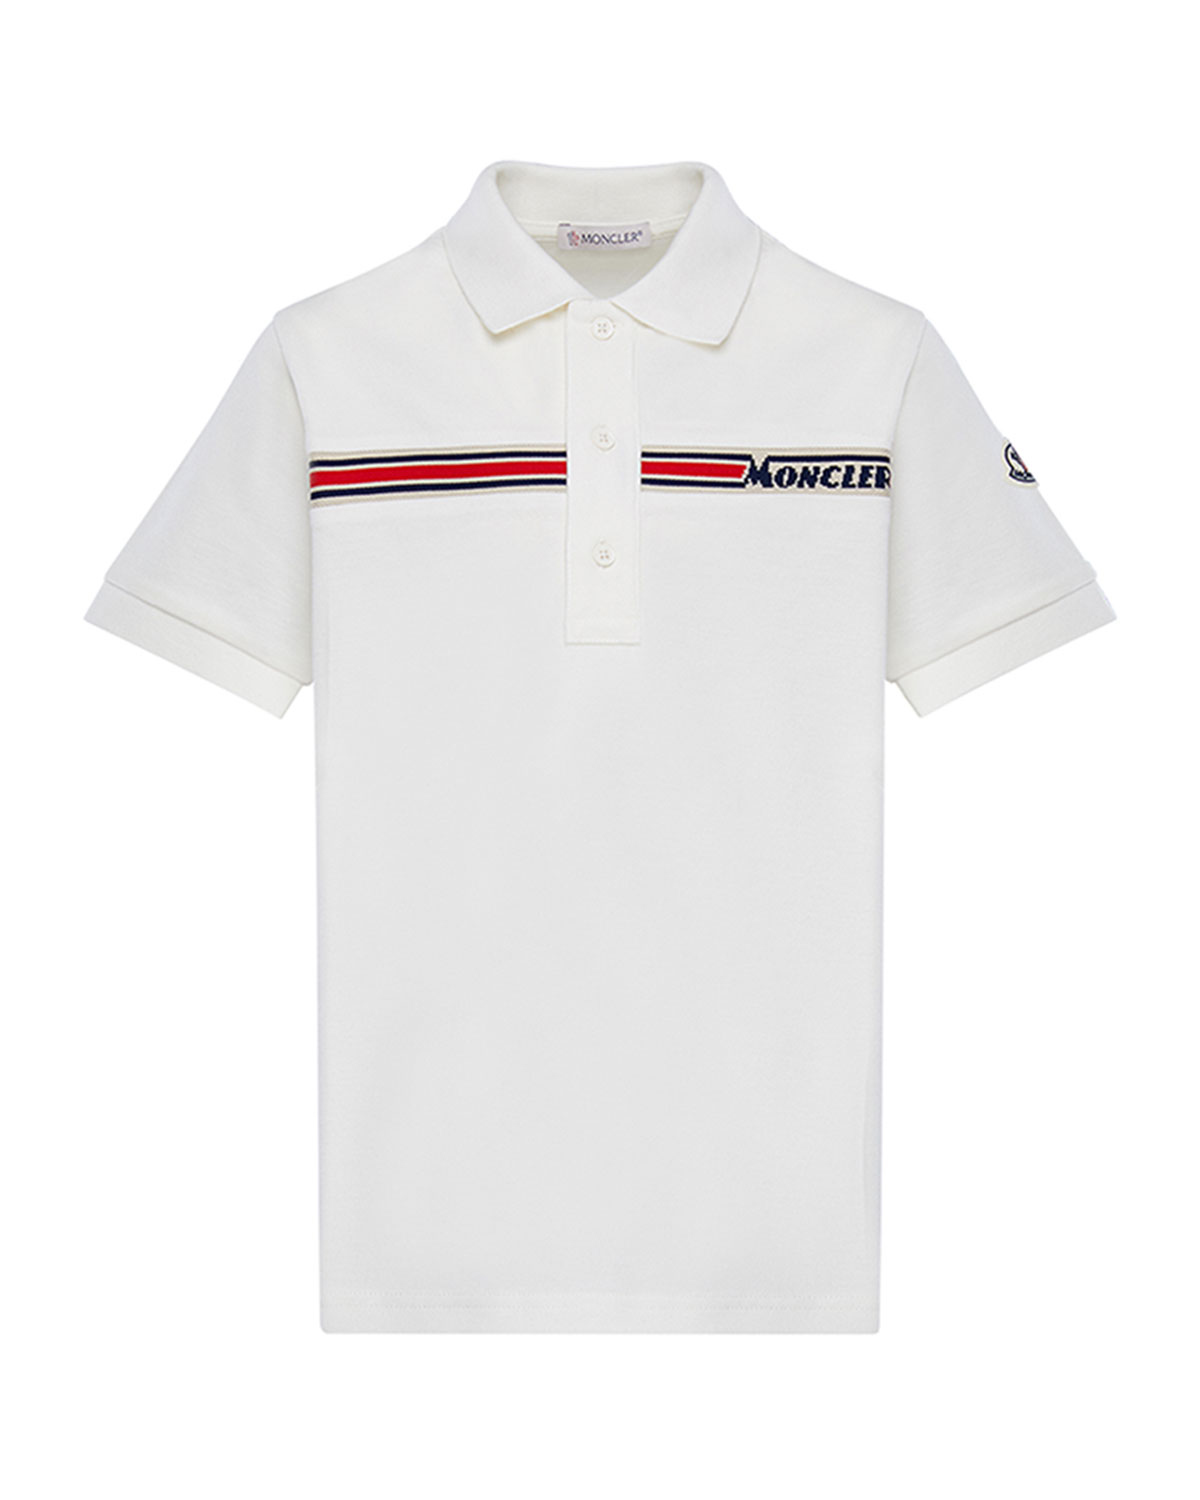 Moncler Boy's Short-Sleeve Logo Polo Shirt, Size 8-14